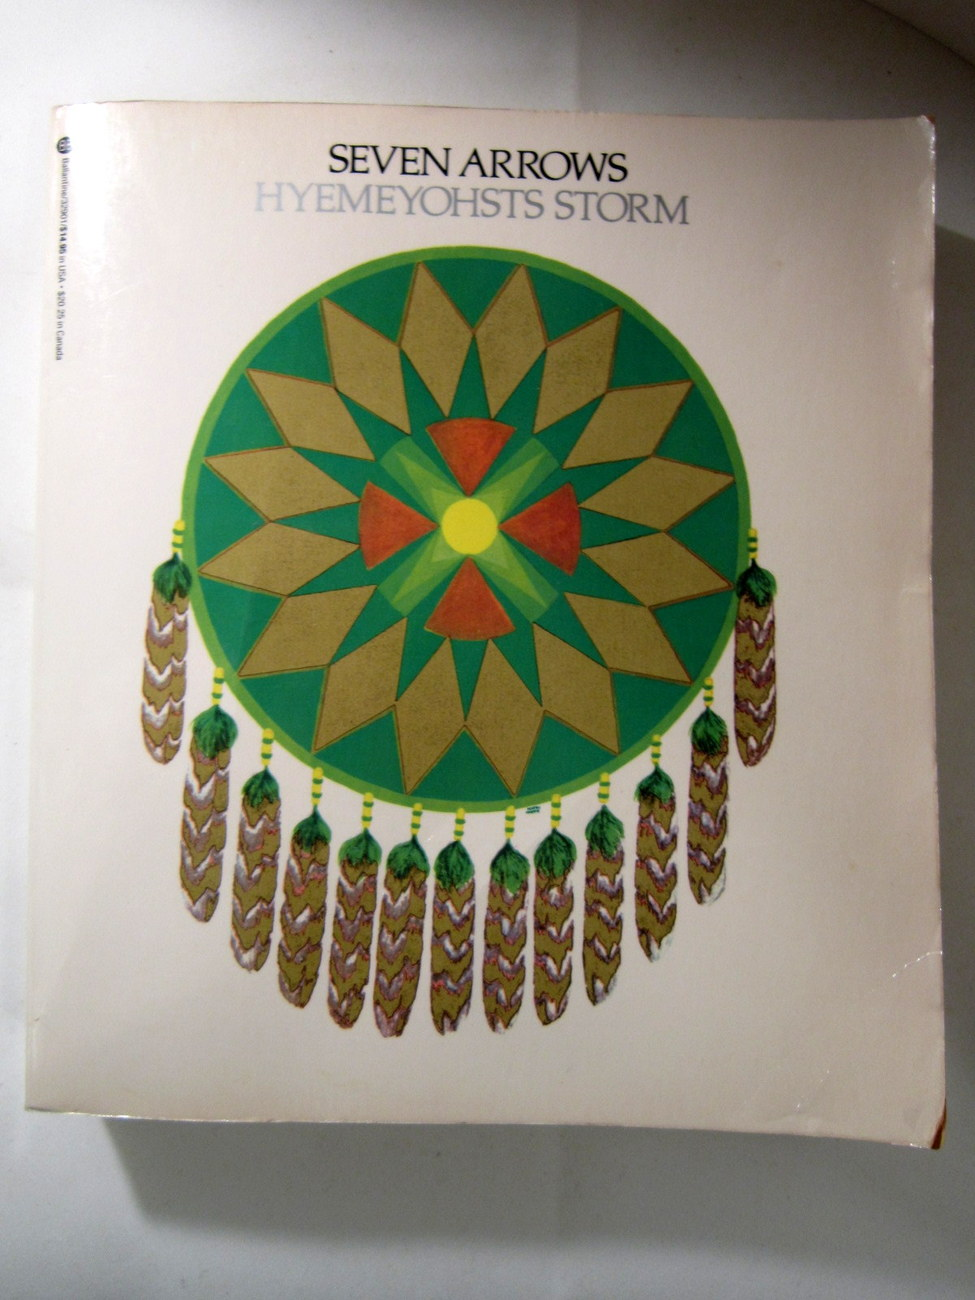 Seven Arrows 1973 Novel by Hyemeyohsts Storm, Native American author